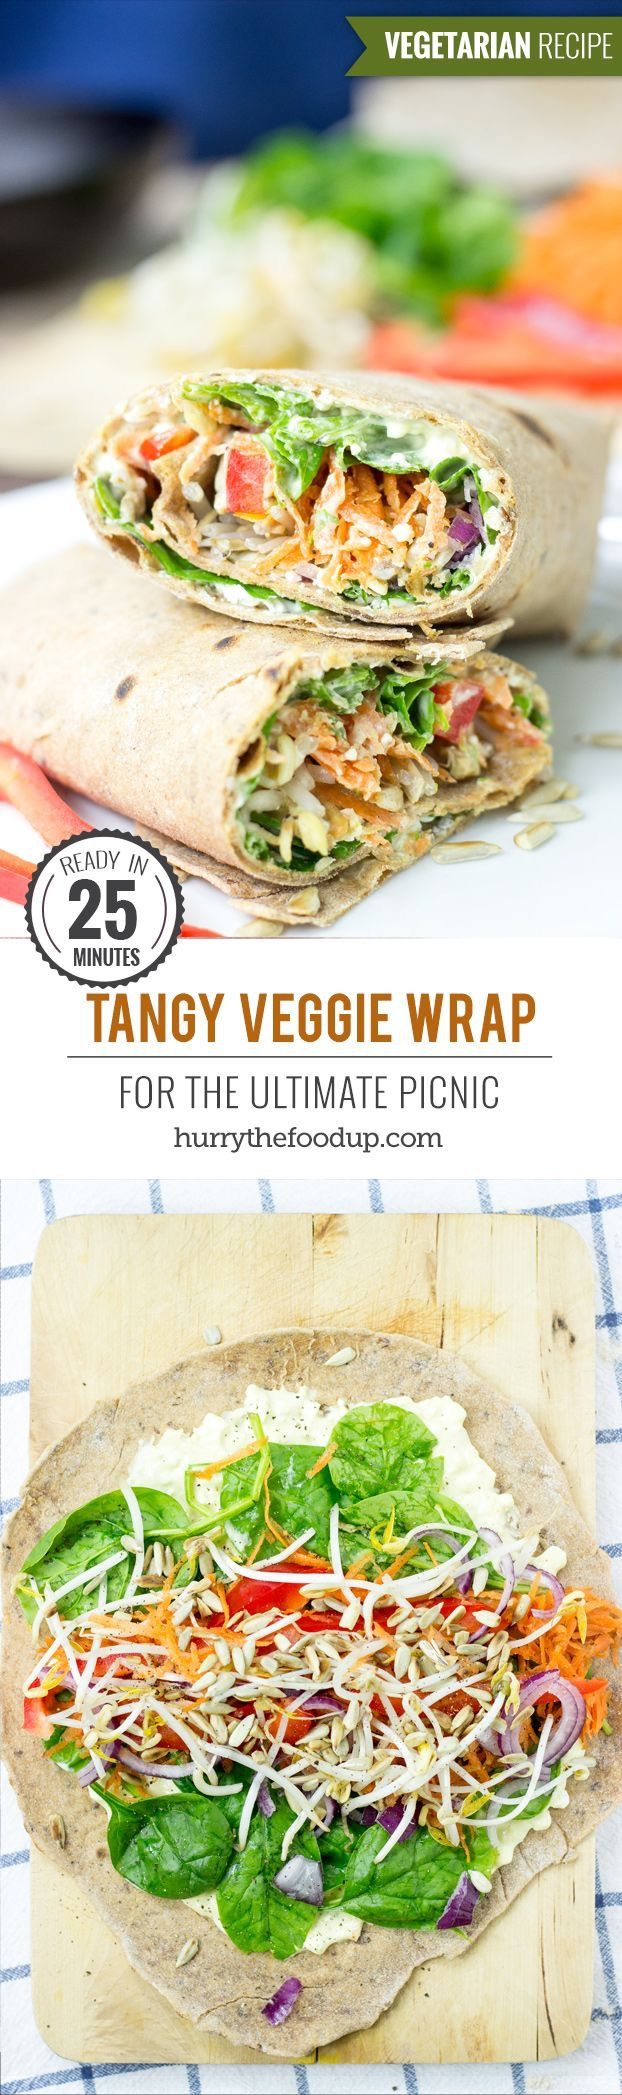 Tangy Veggie Wrap – For The Ultimate Picnic